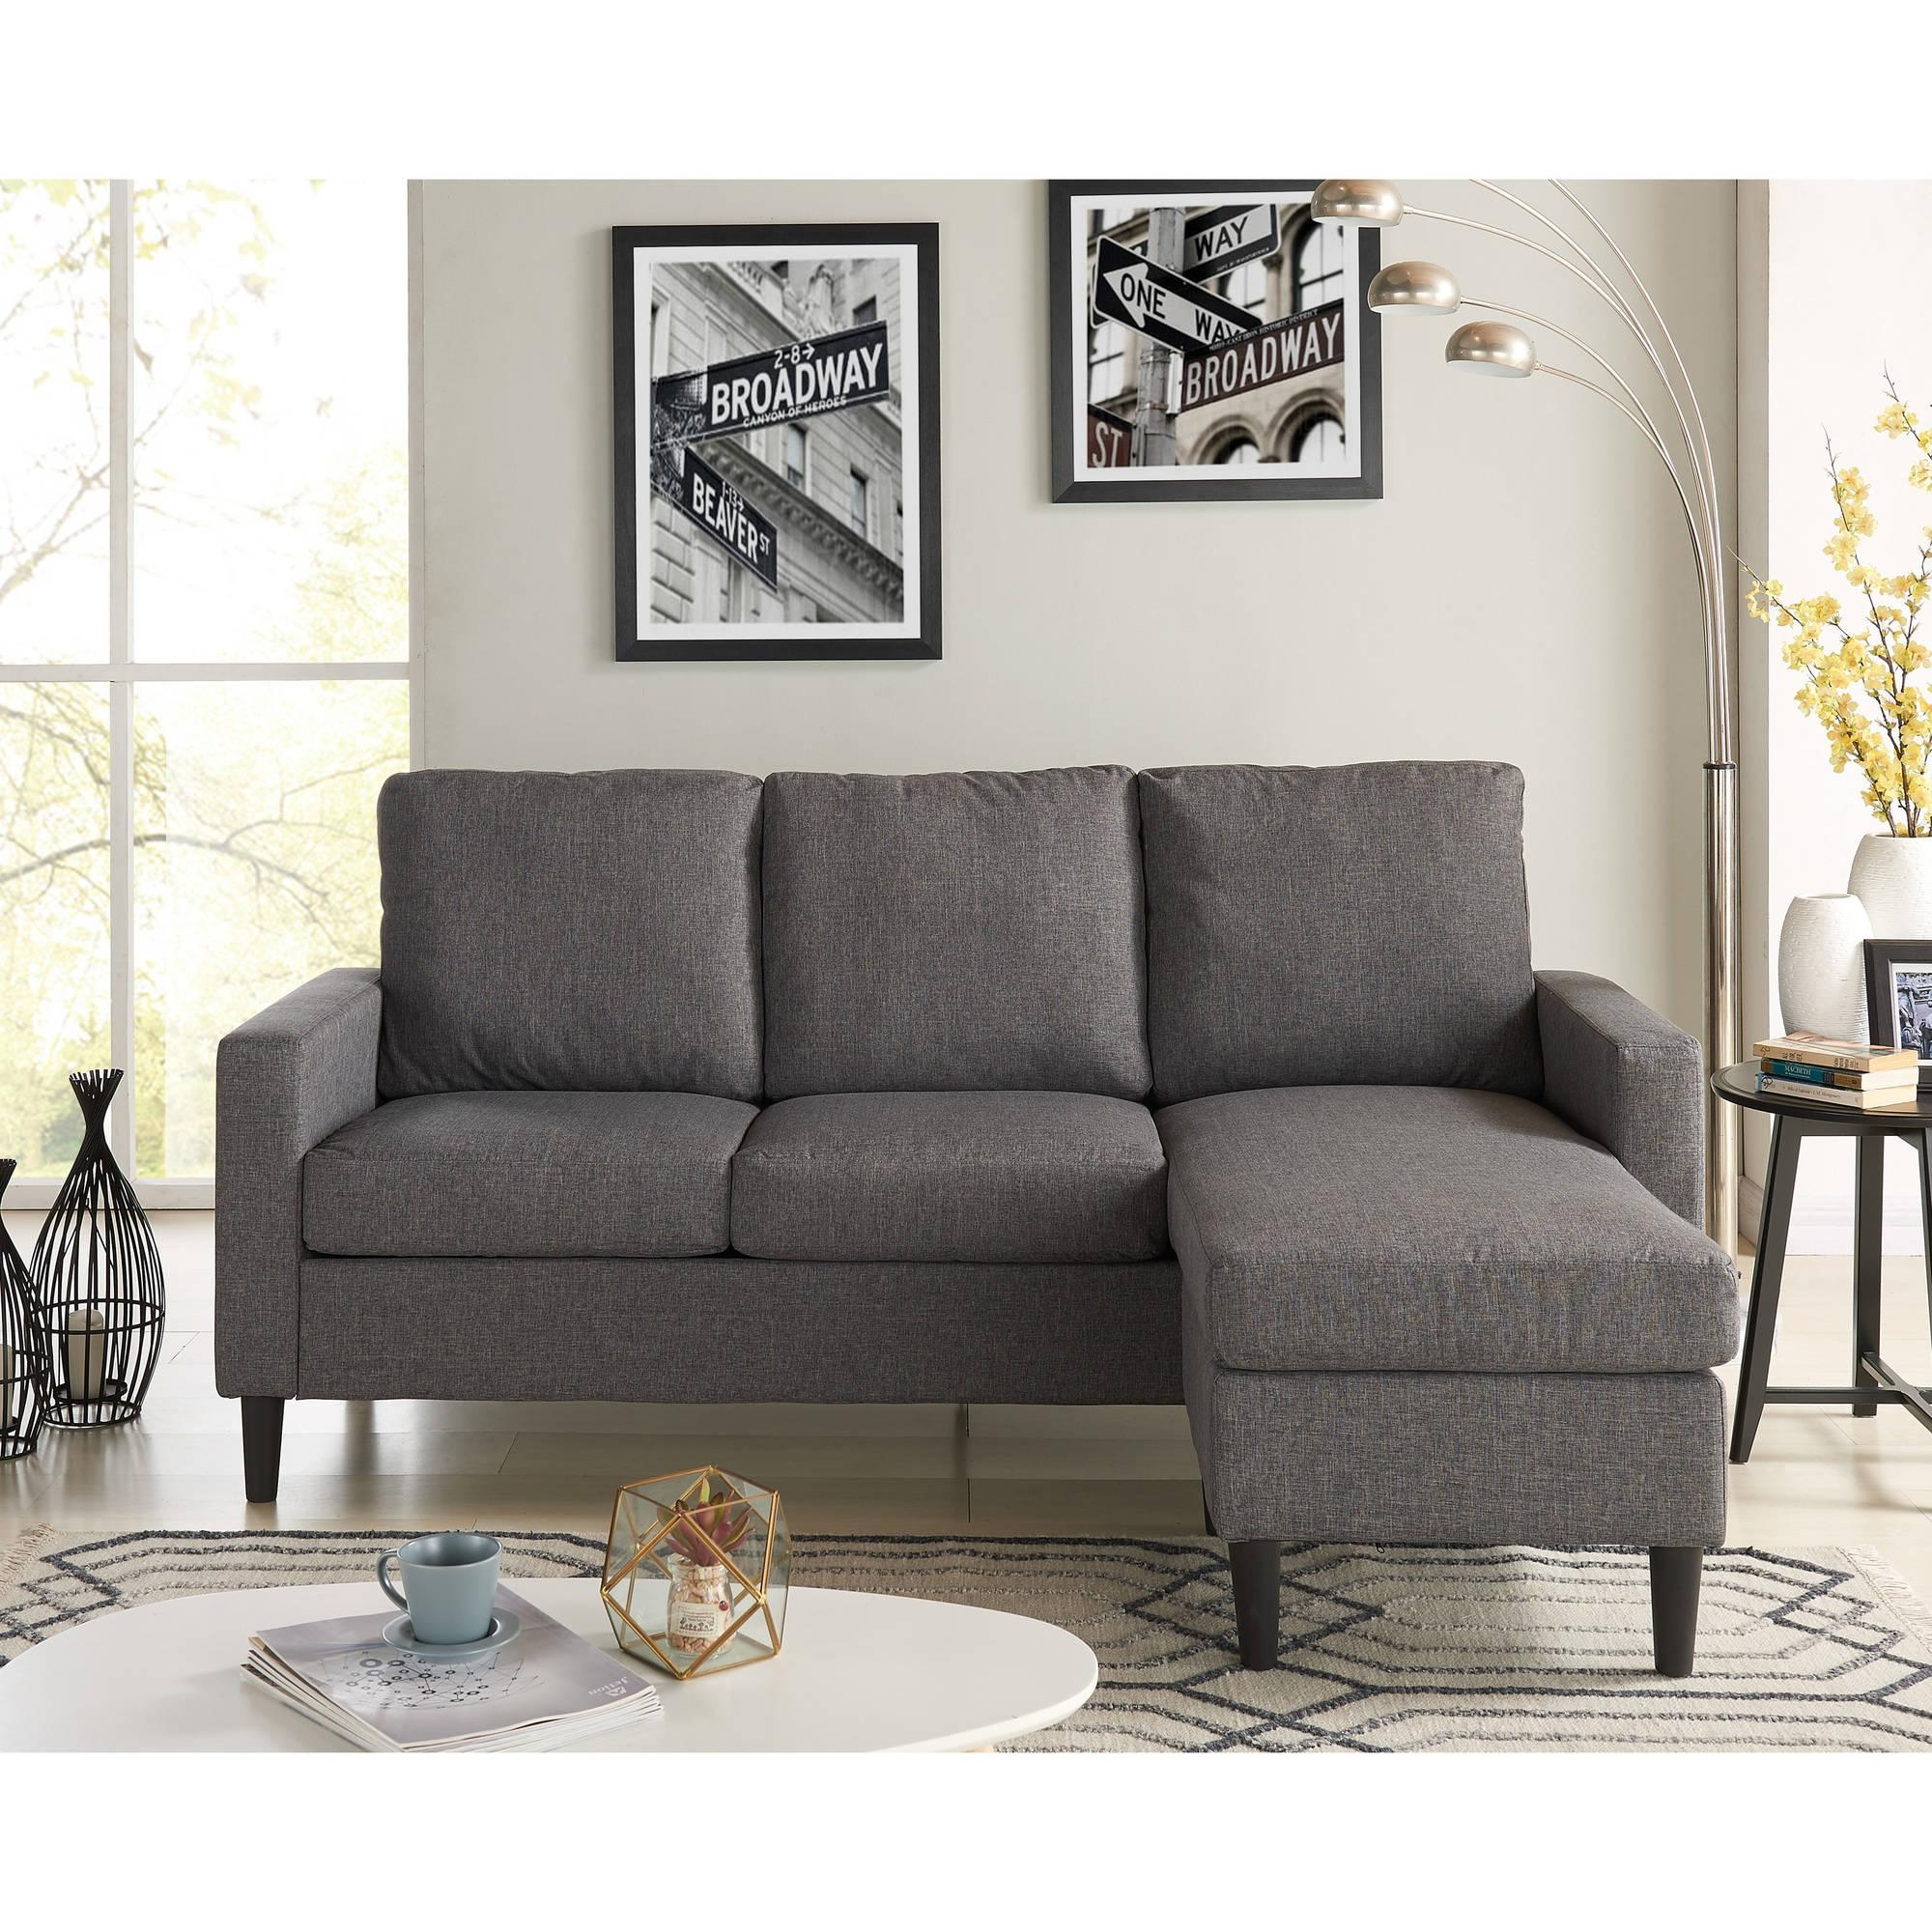 Mainstays Apartment Reversible Sectional – Walmart Intended For Apartment Sectional (Image 14 of 15)